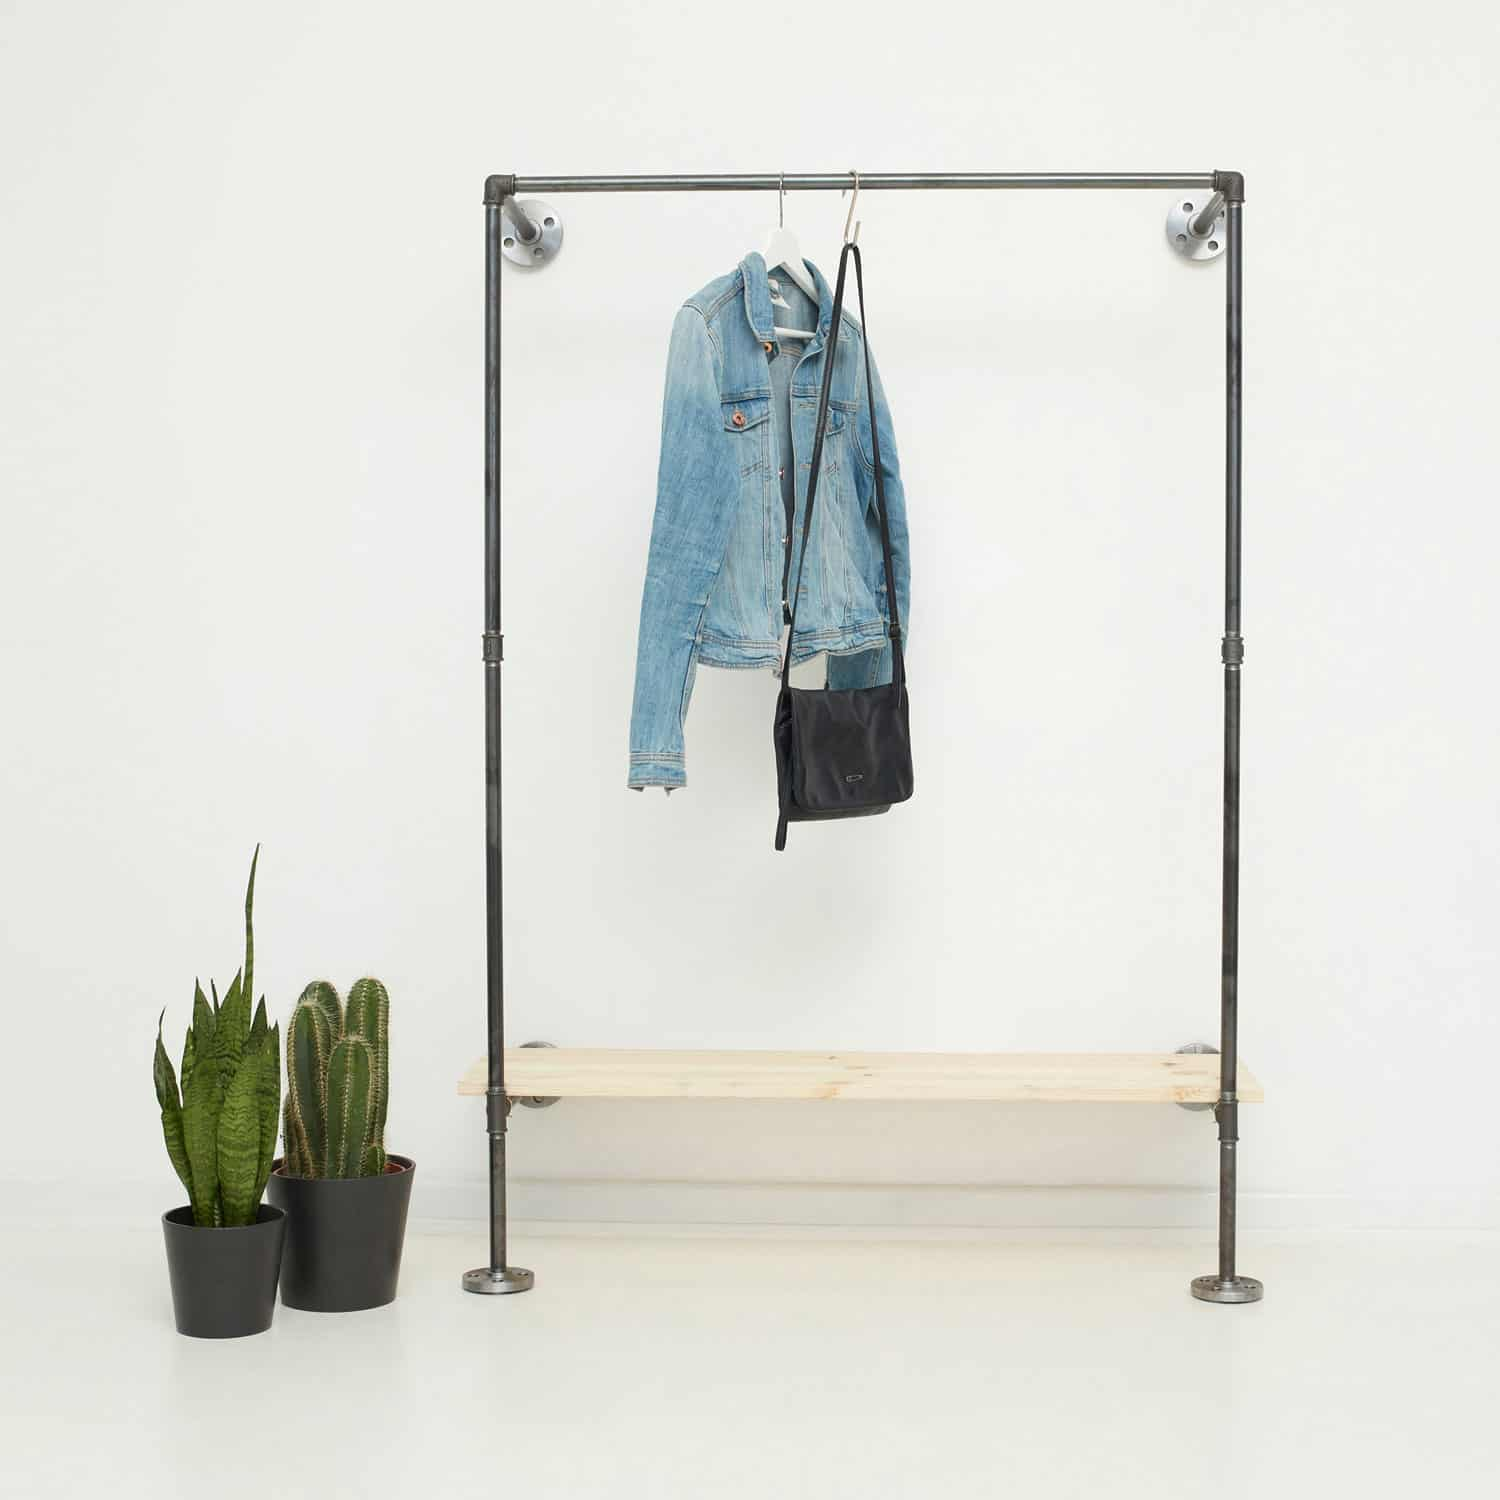 Jacken Garderobe Industrial Garderobe Kombination Kleiderstange Schuhregal Ideal One